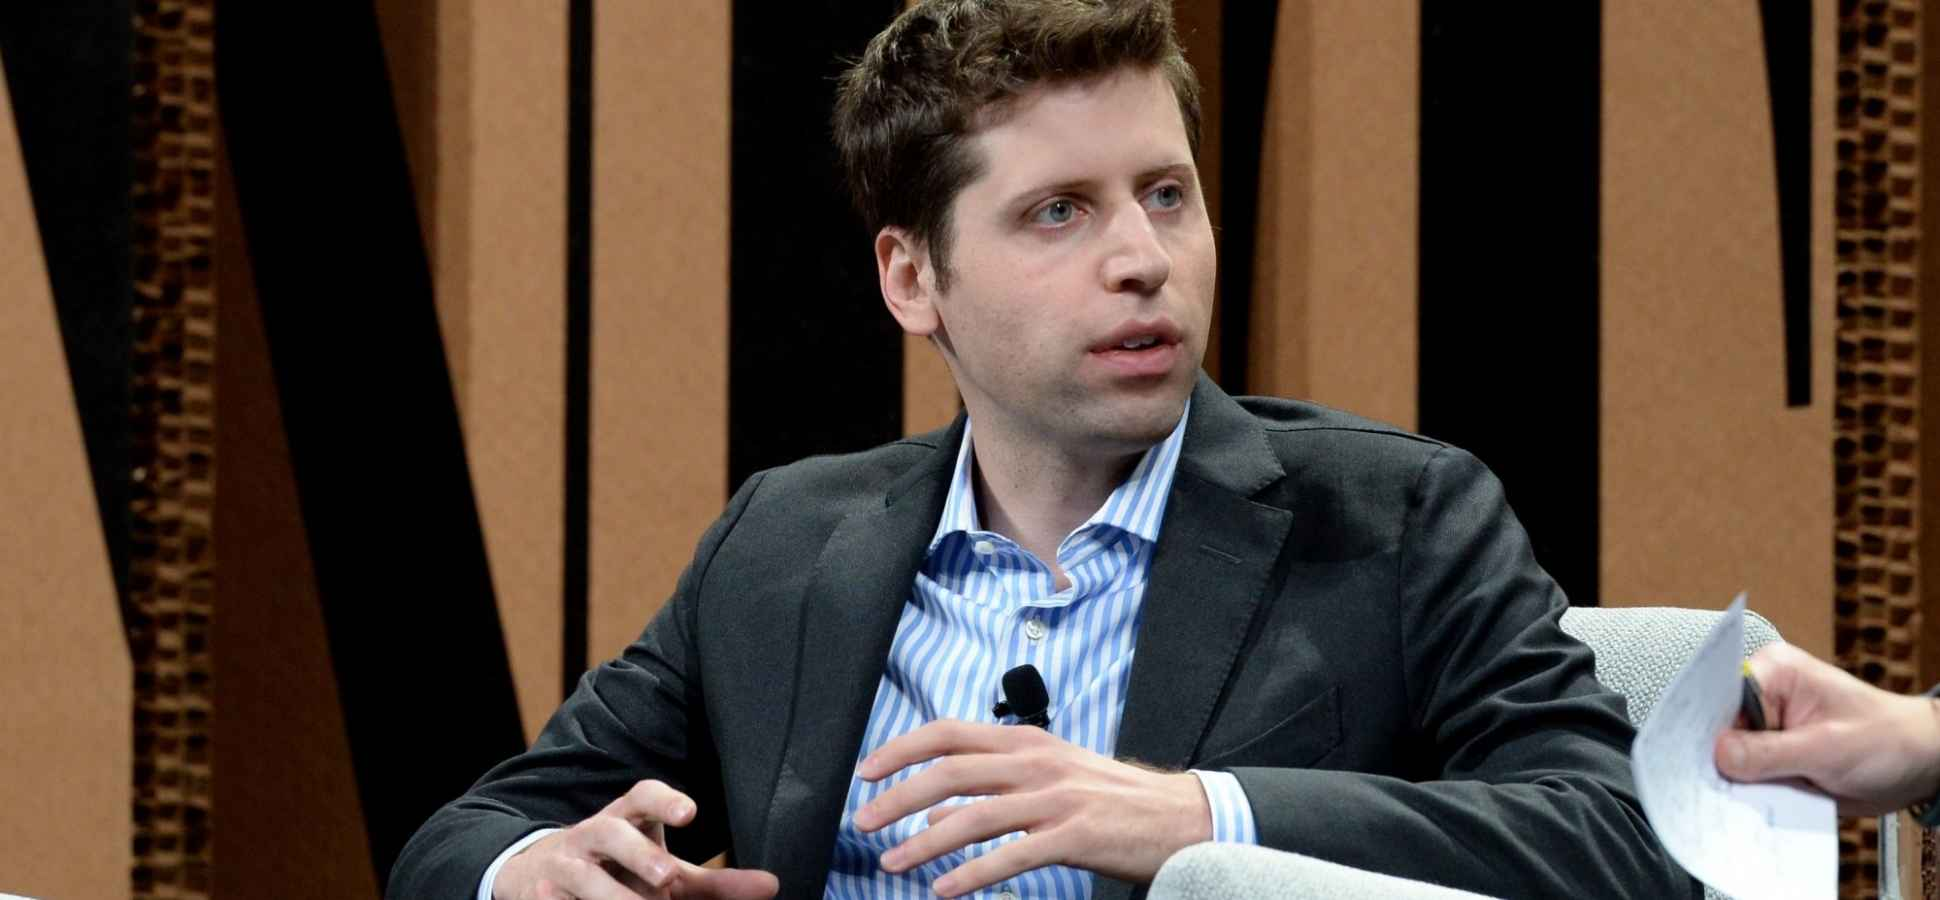 An Inside Look at Y Combinator's Ambitious Plan to Mentor 2,000 Startups a Year